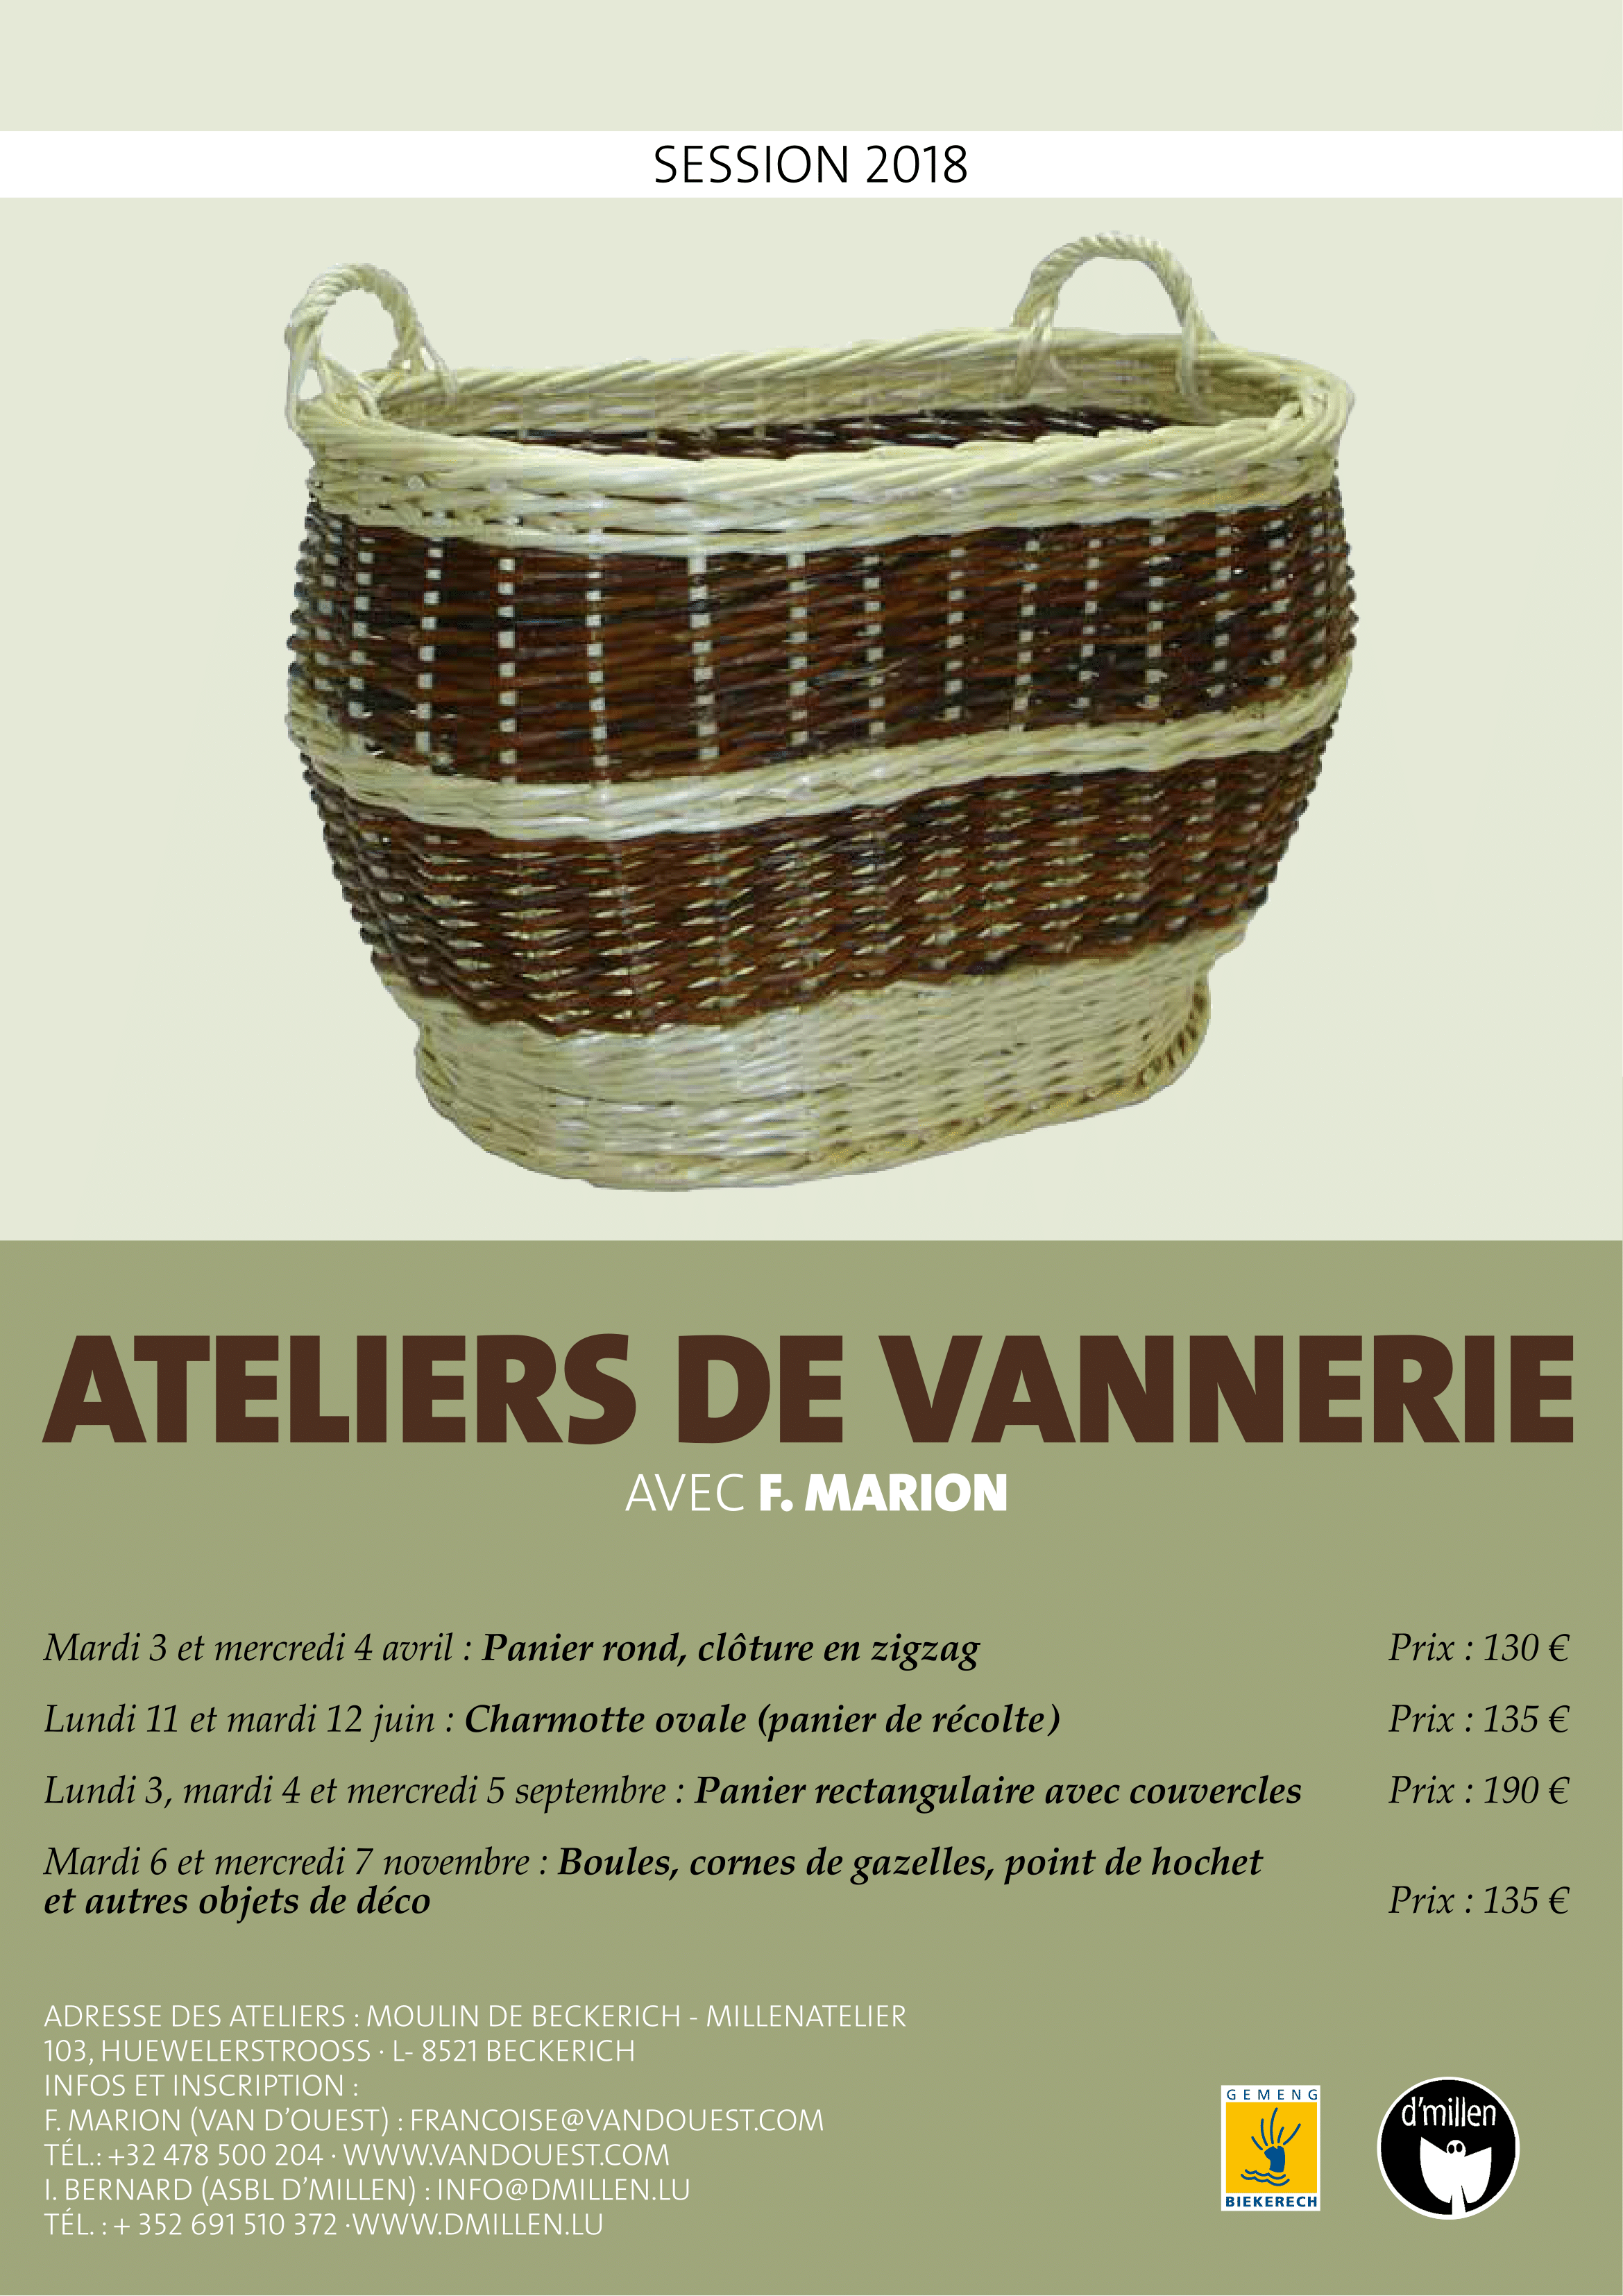 04-18 aff vannerie-bd-1.png